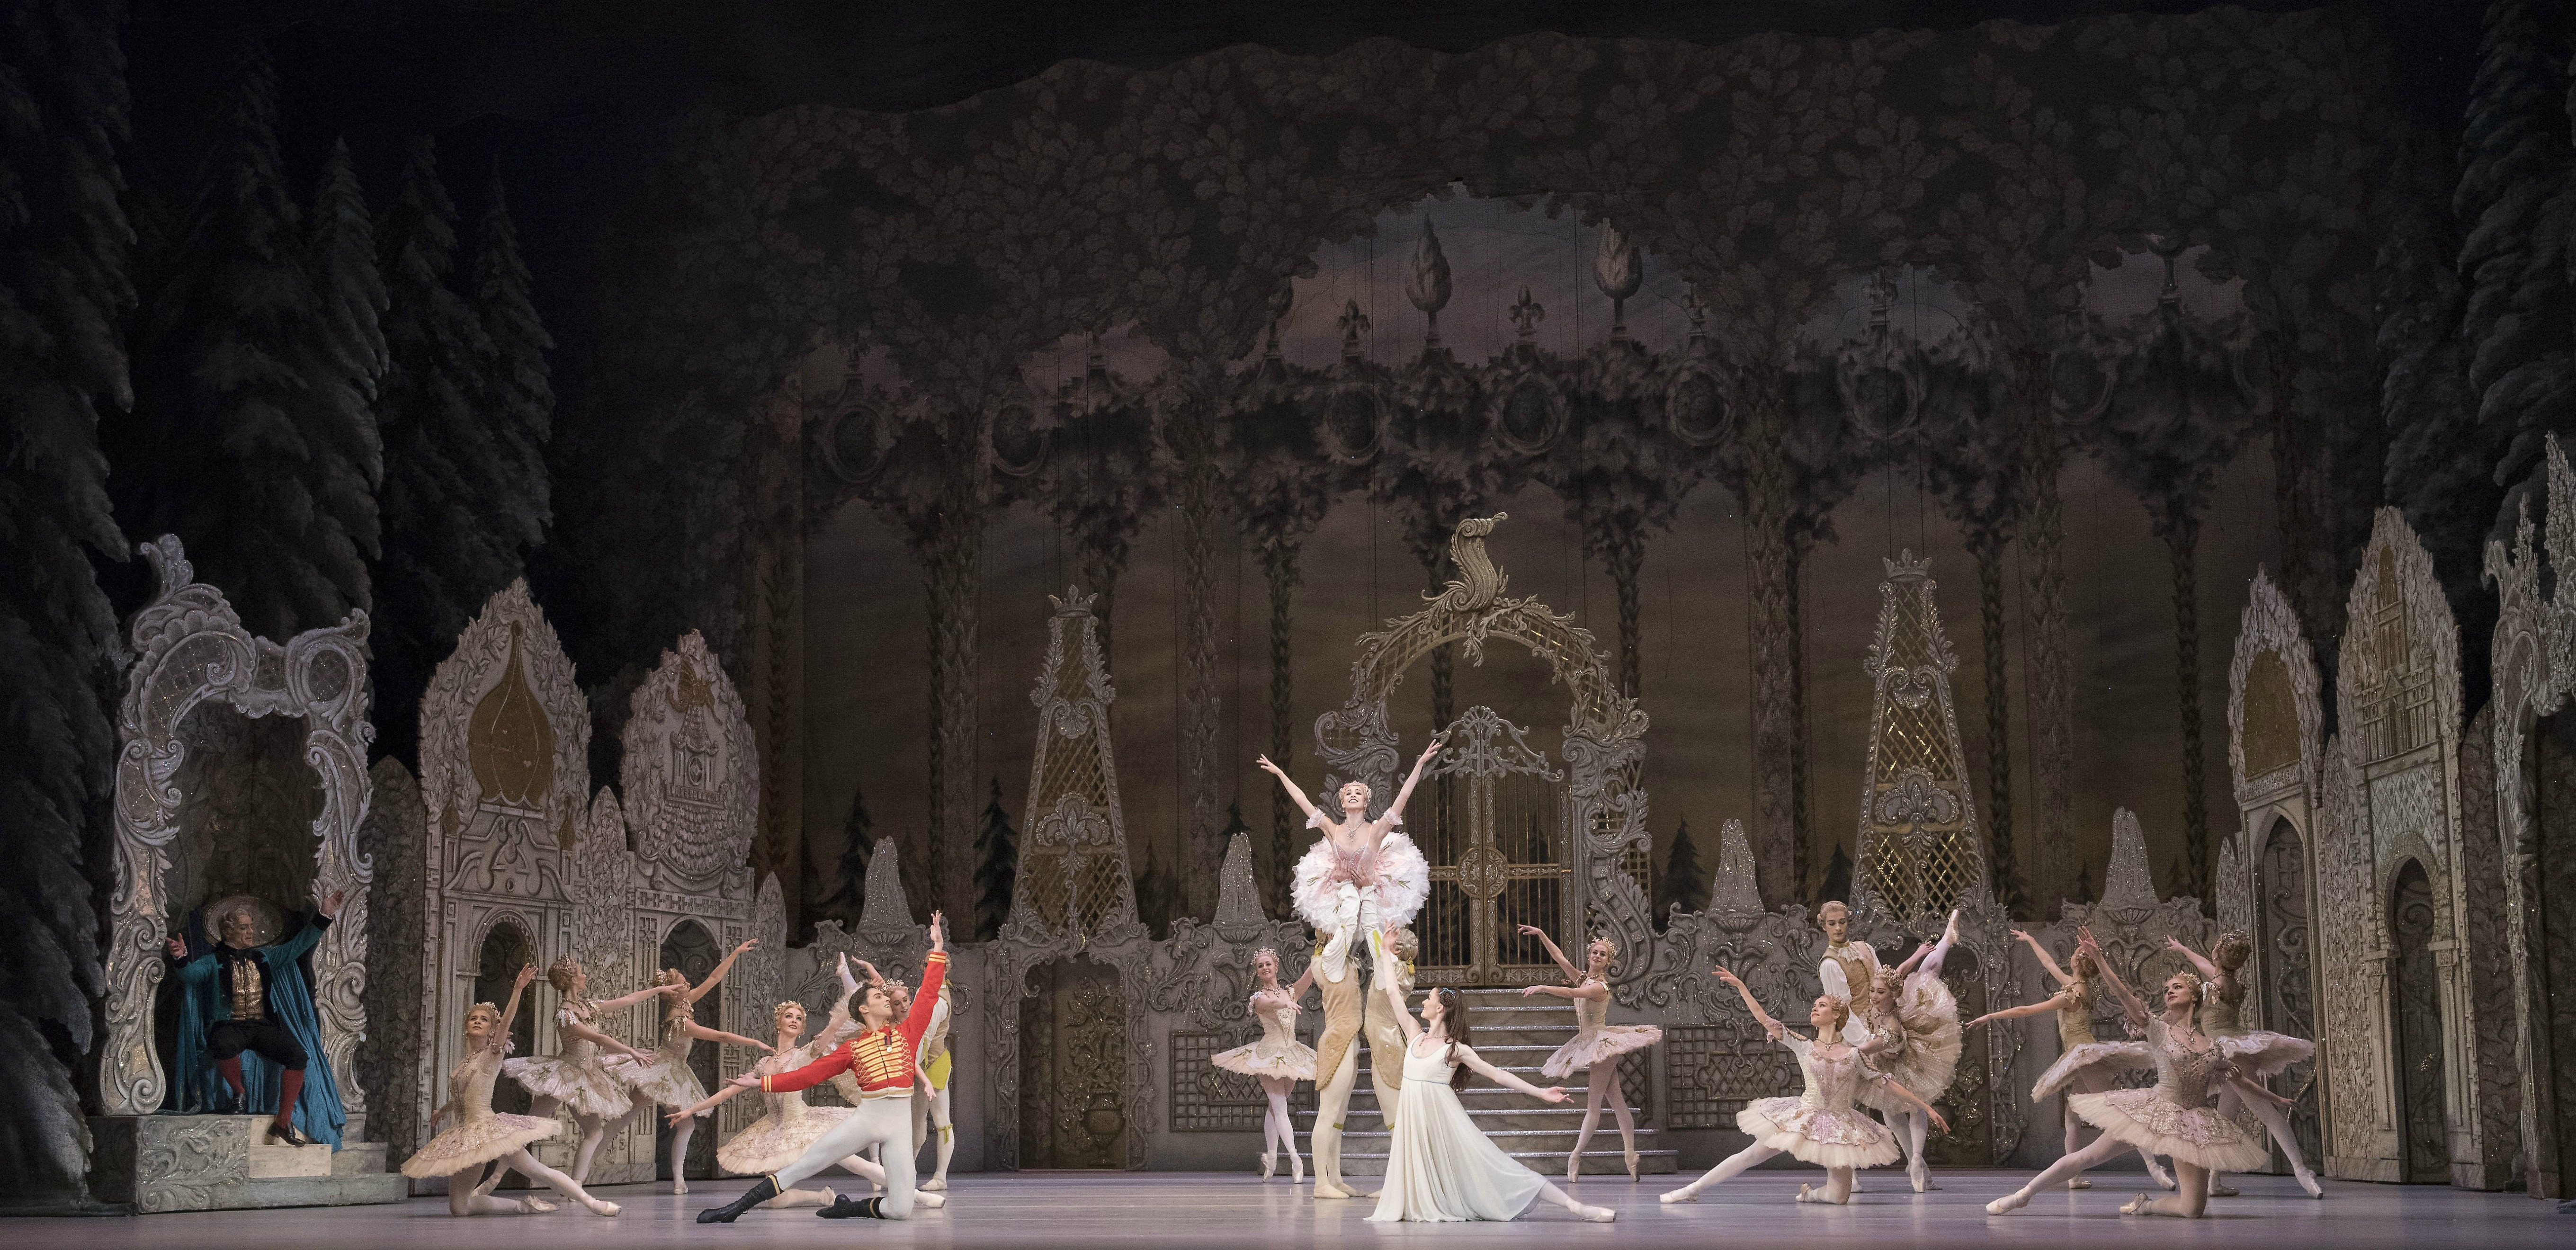 Artists of The Royal Ballet in the Nutcracker. Photo by Alastair Muir/Rex Features